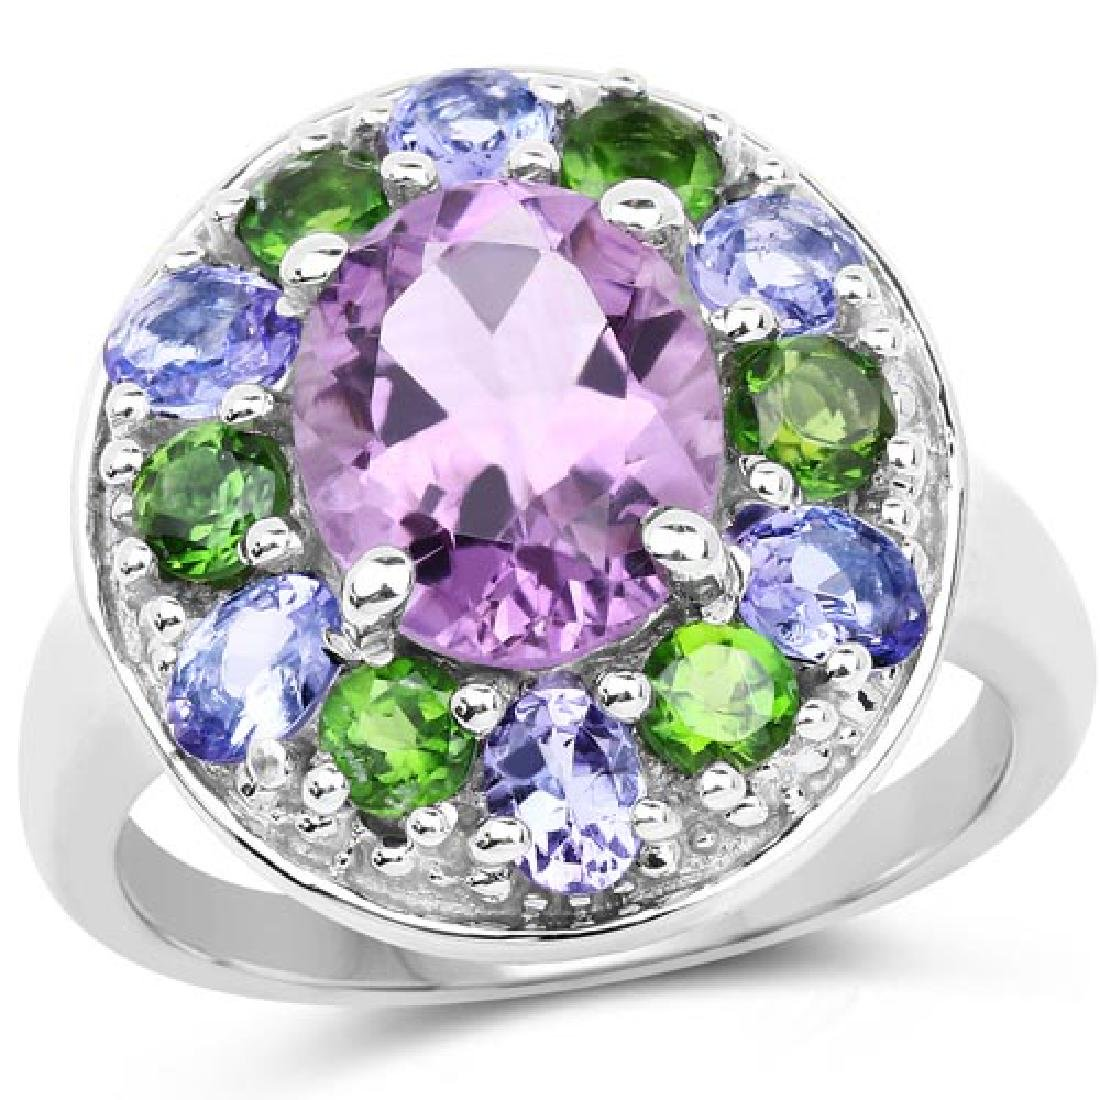 3.89 Carat Genuine Amethyst Tanzanite and Chrome Diops